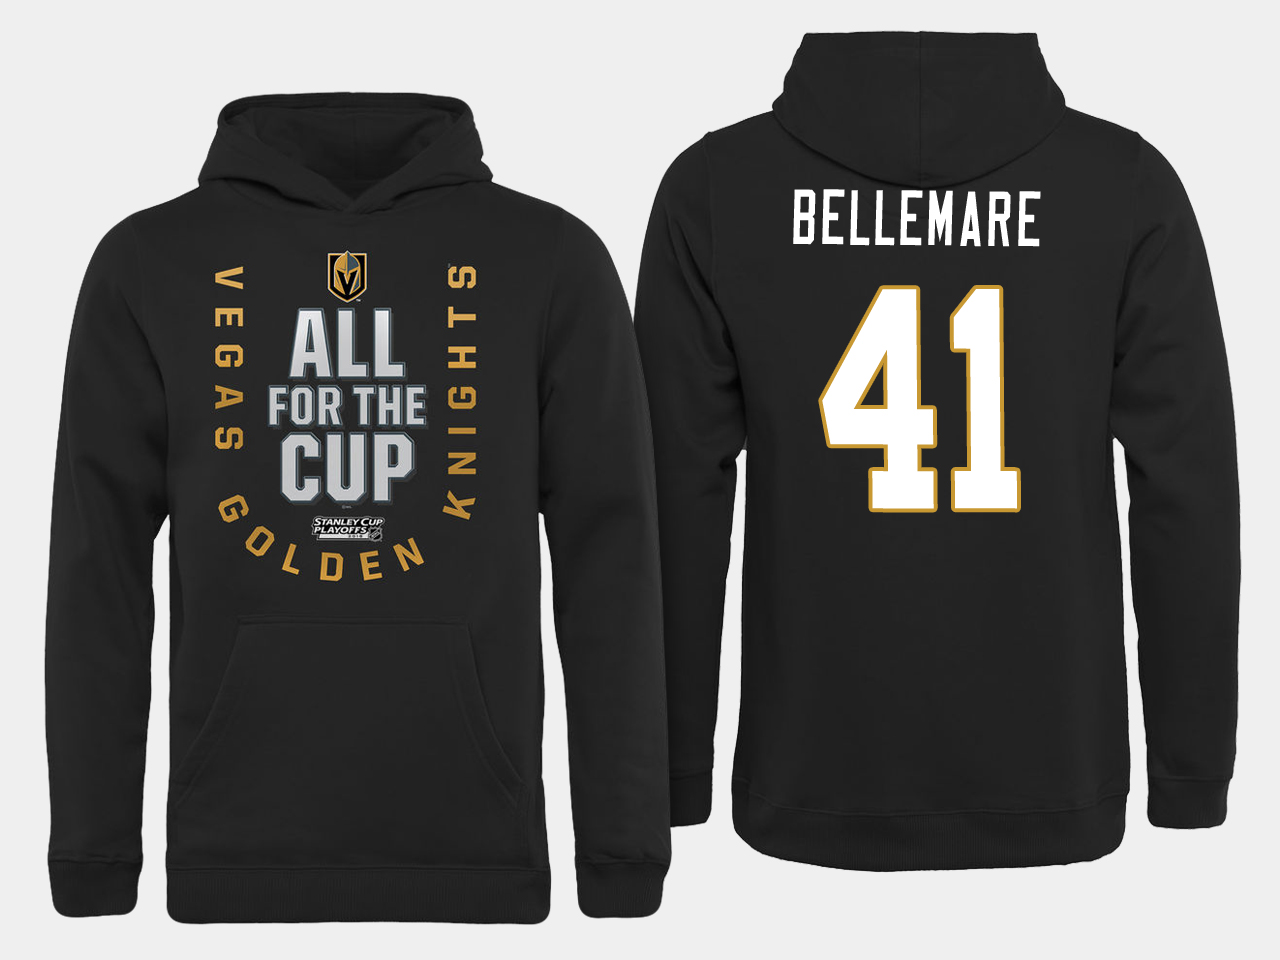 Men NHL Vegas Golden Knights 41 Bellemare All for the Cup hoodie